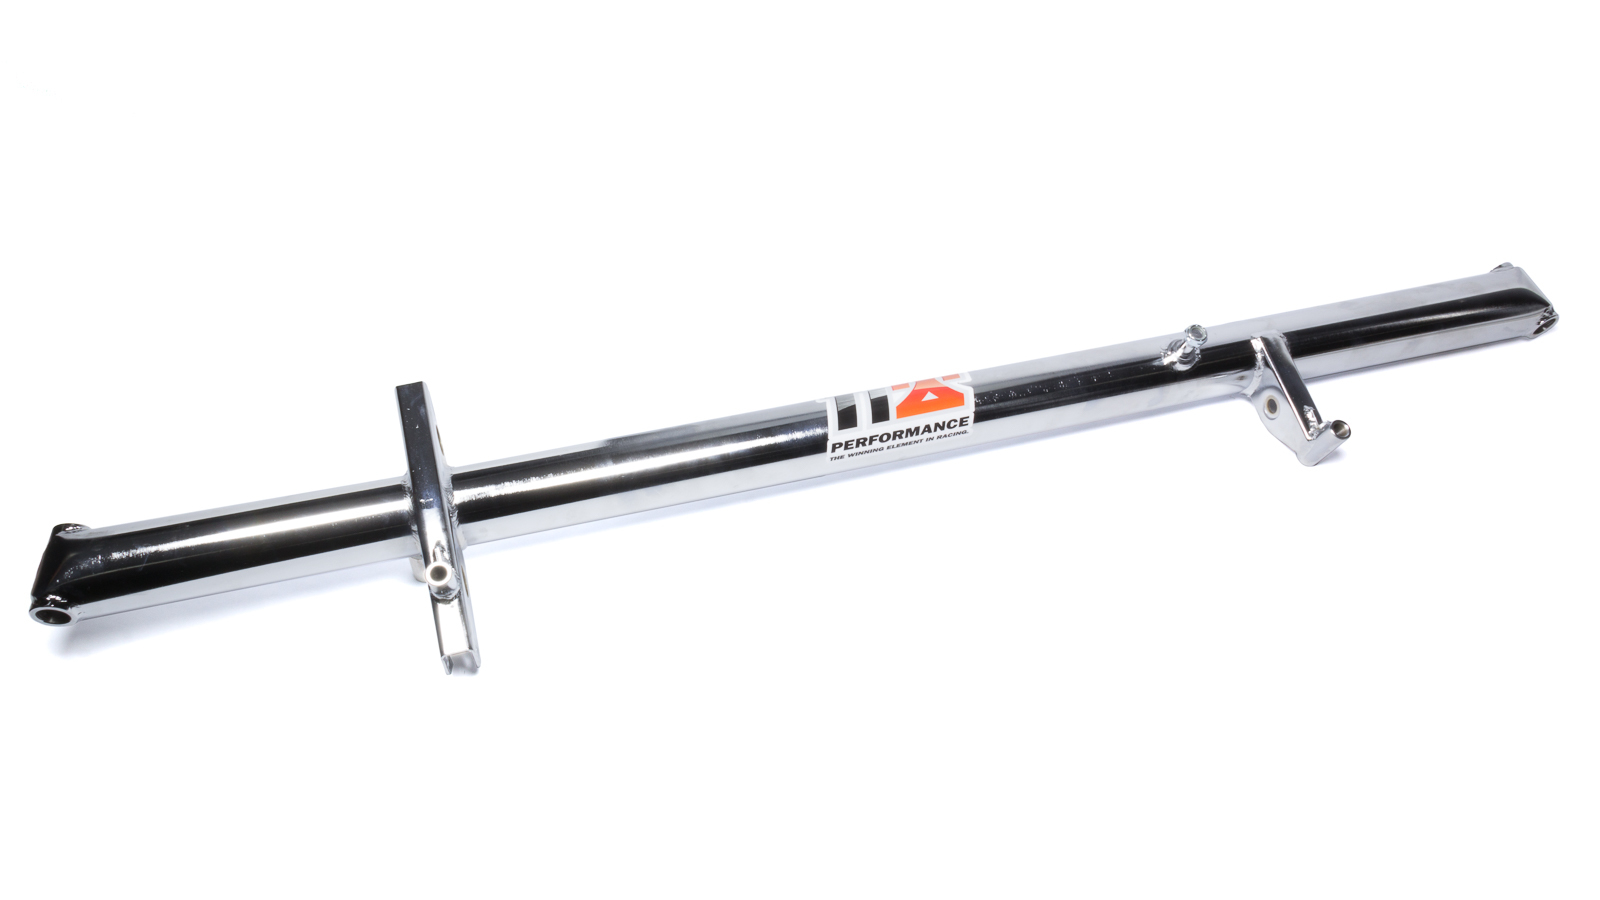 Sprint Front Axle 50in x 2-1/2in Chrome